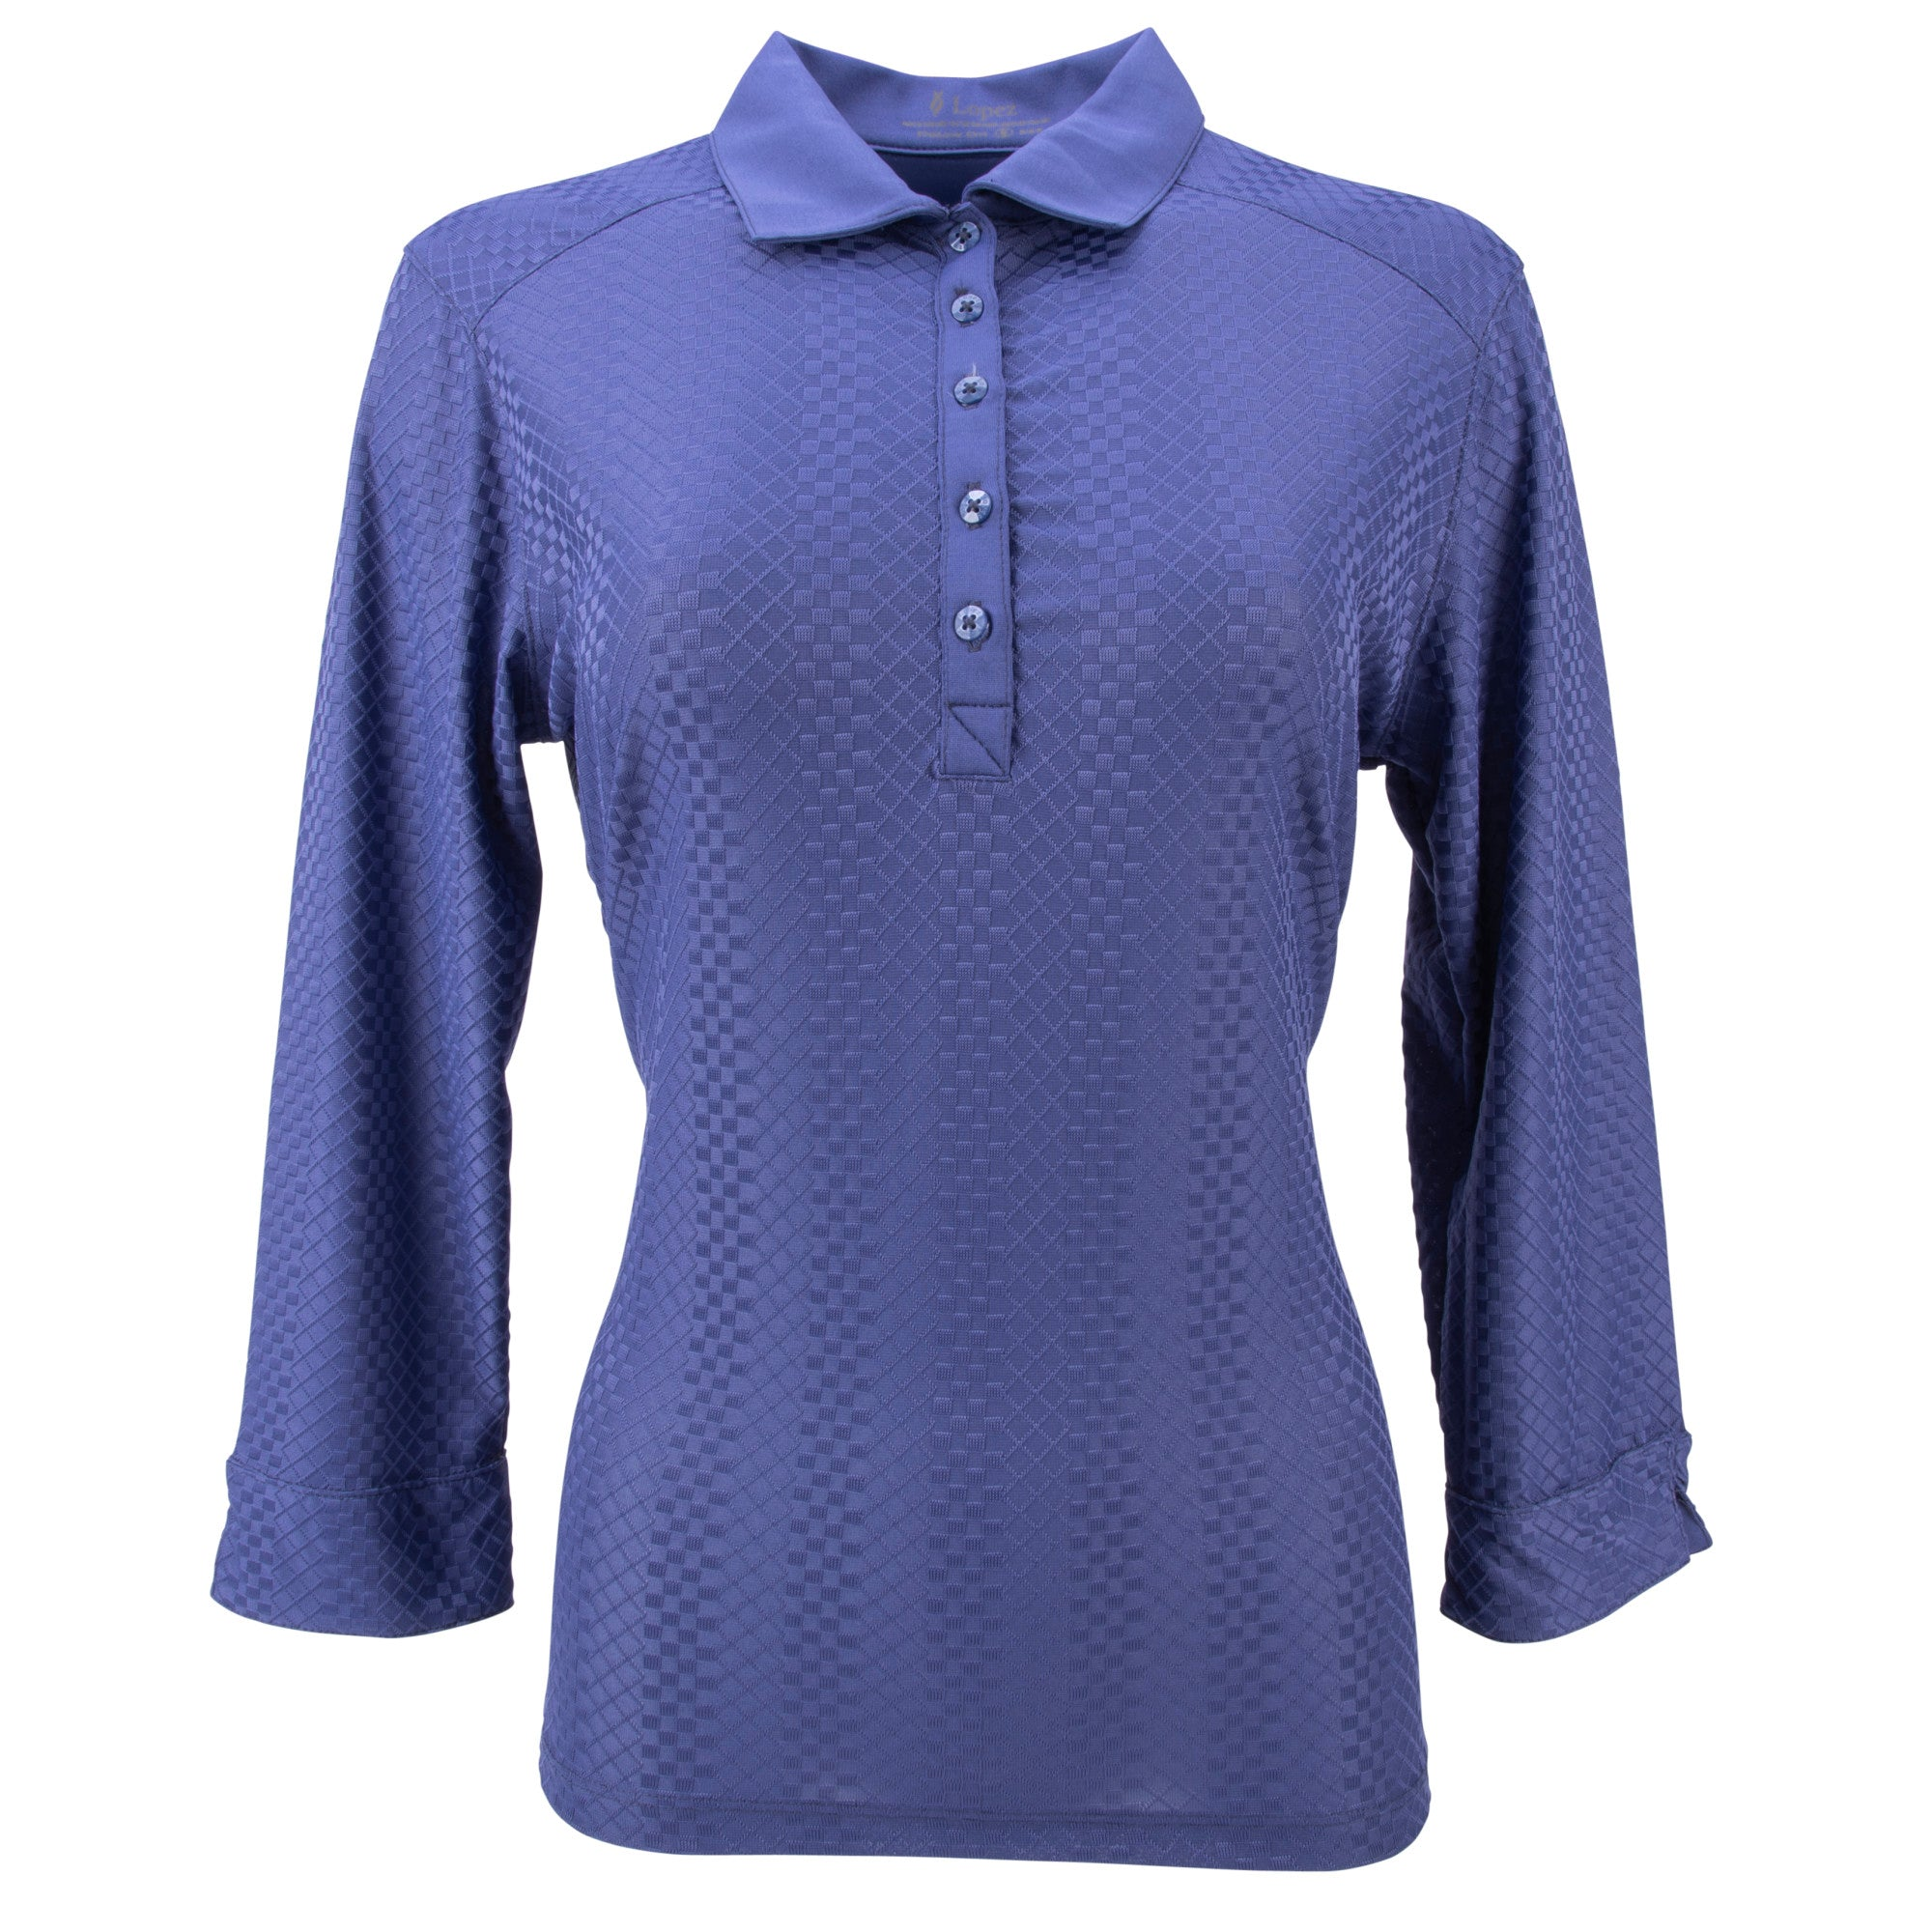 Nancy Lopez Golf Grace 3/4 Sleeve Polo - L420306